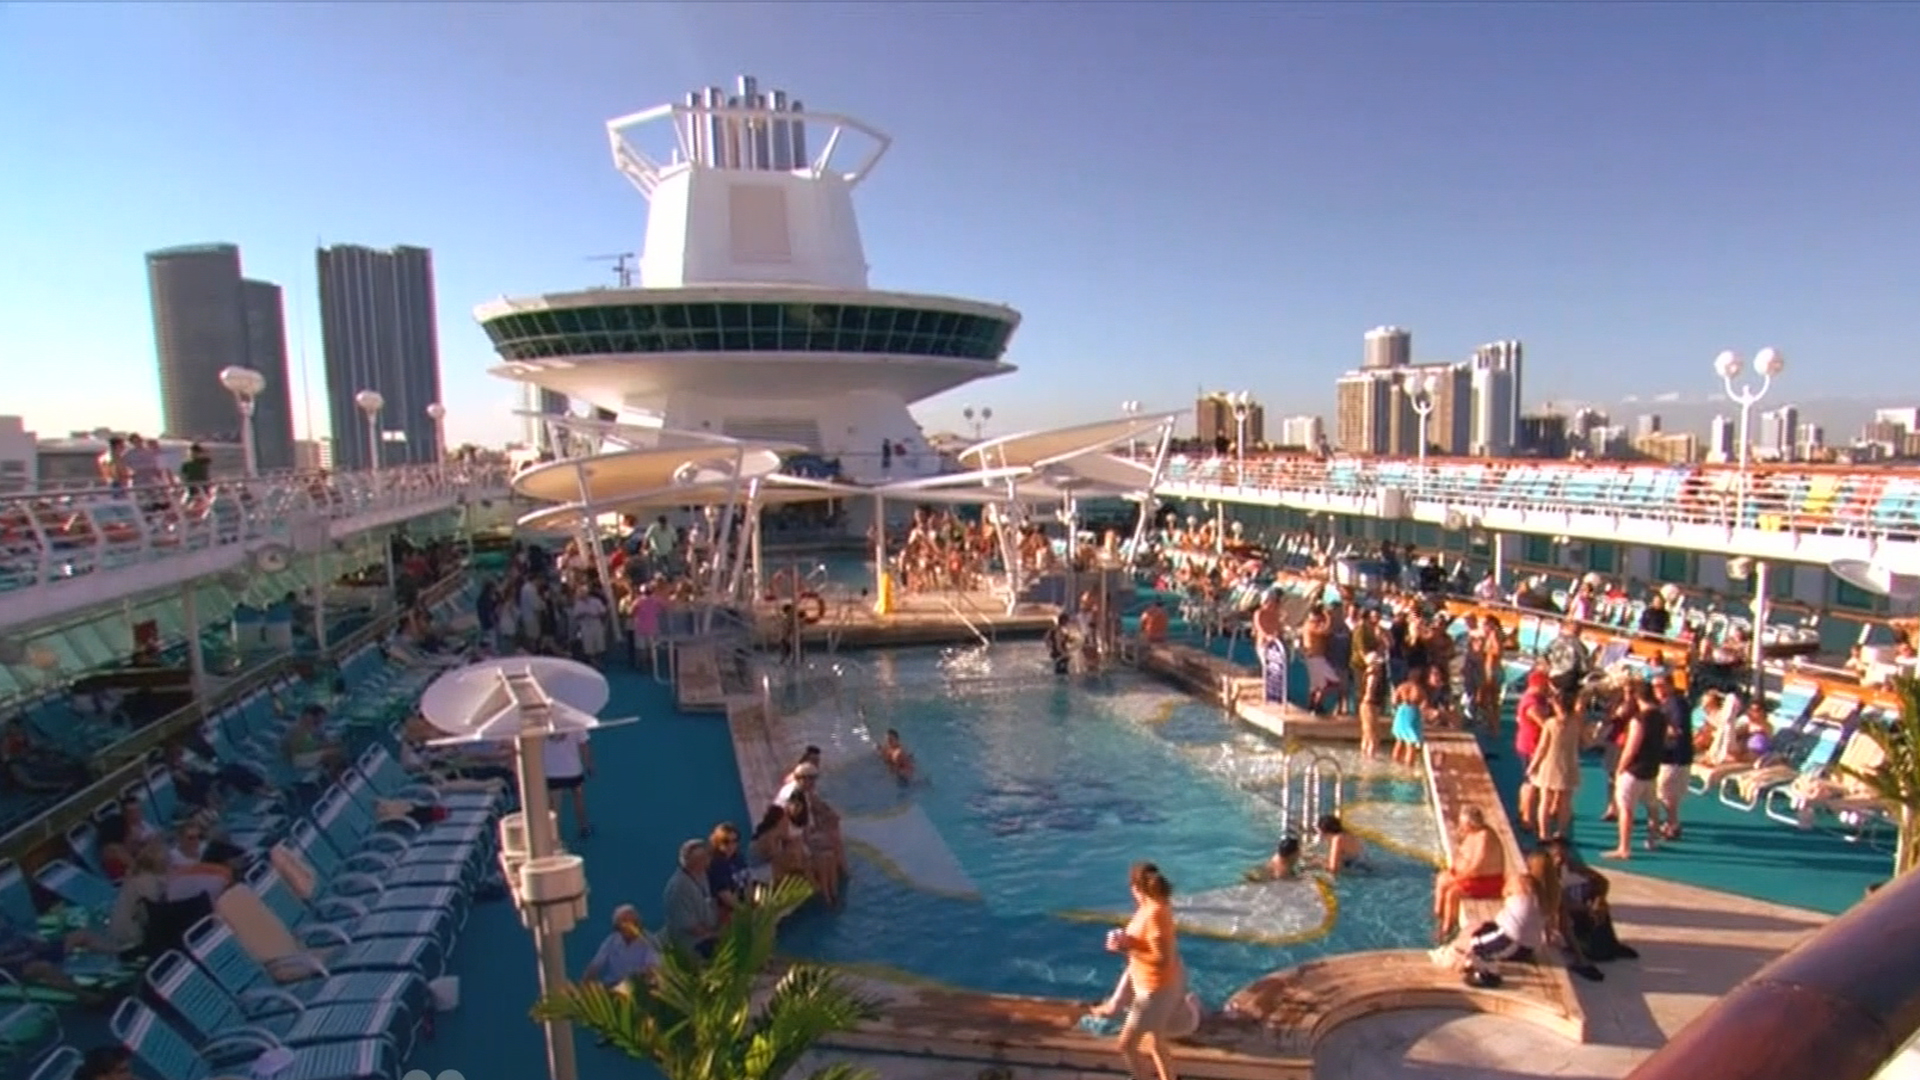 Lawmakers Turn Attention To Crime On Cruise Ships Video On - Cruise ship crimes